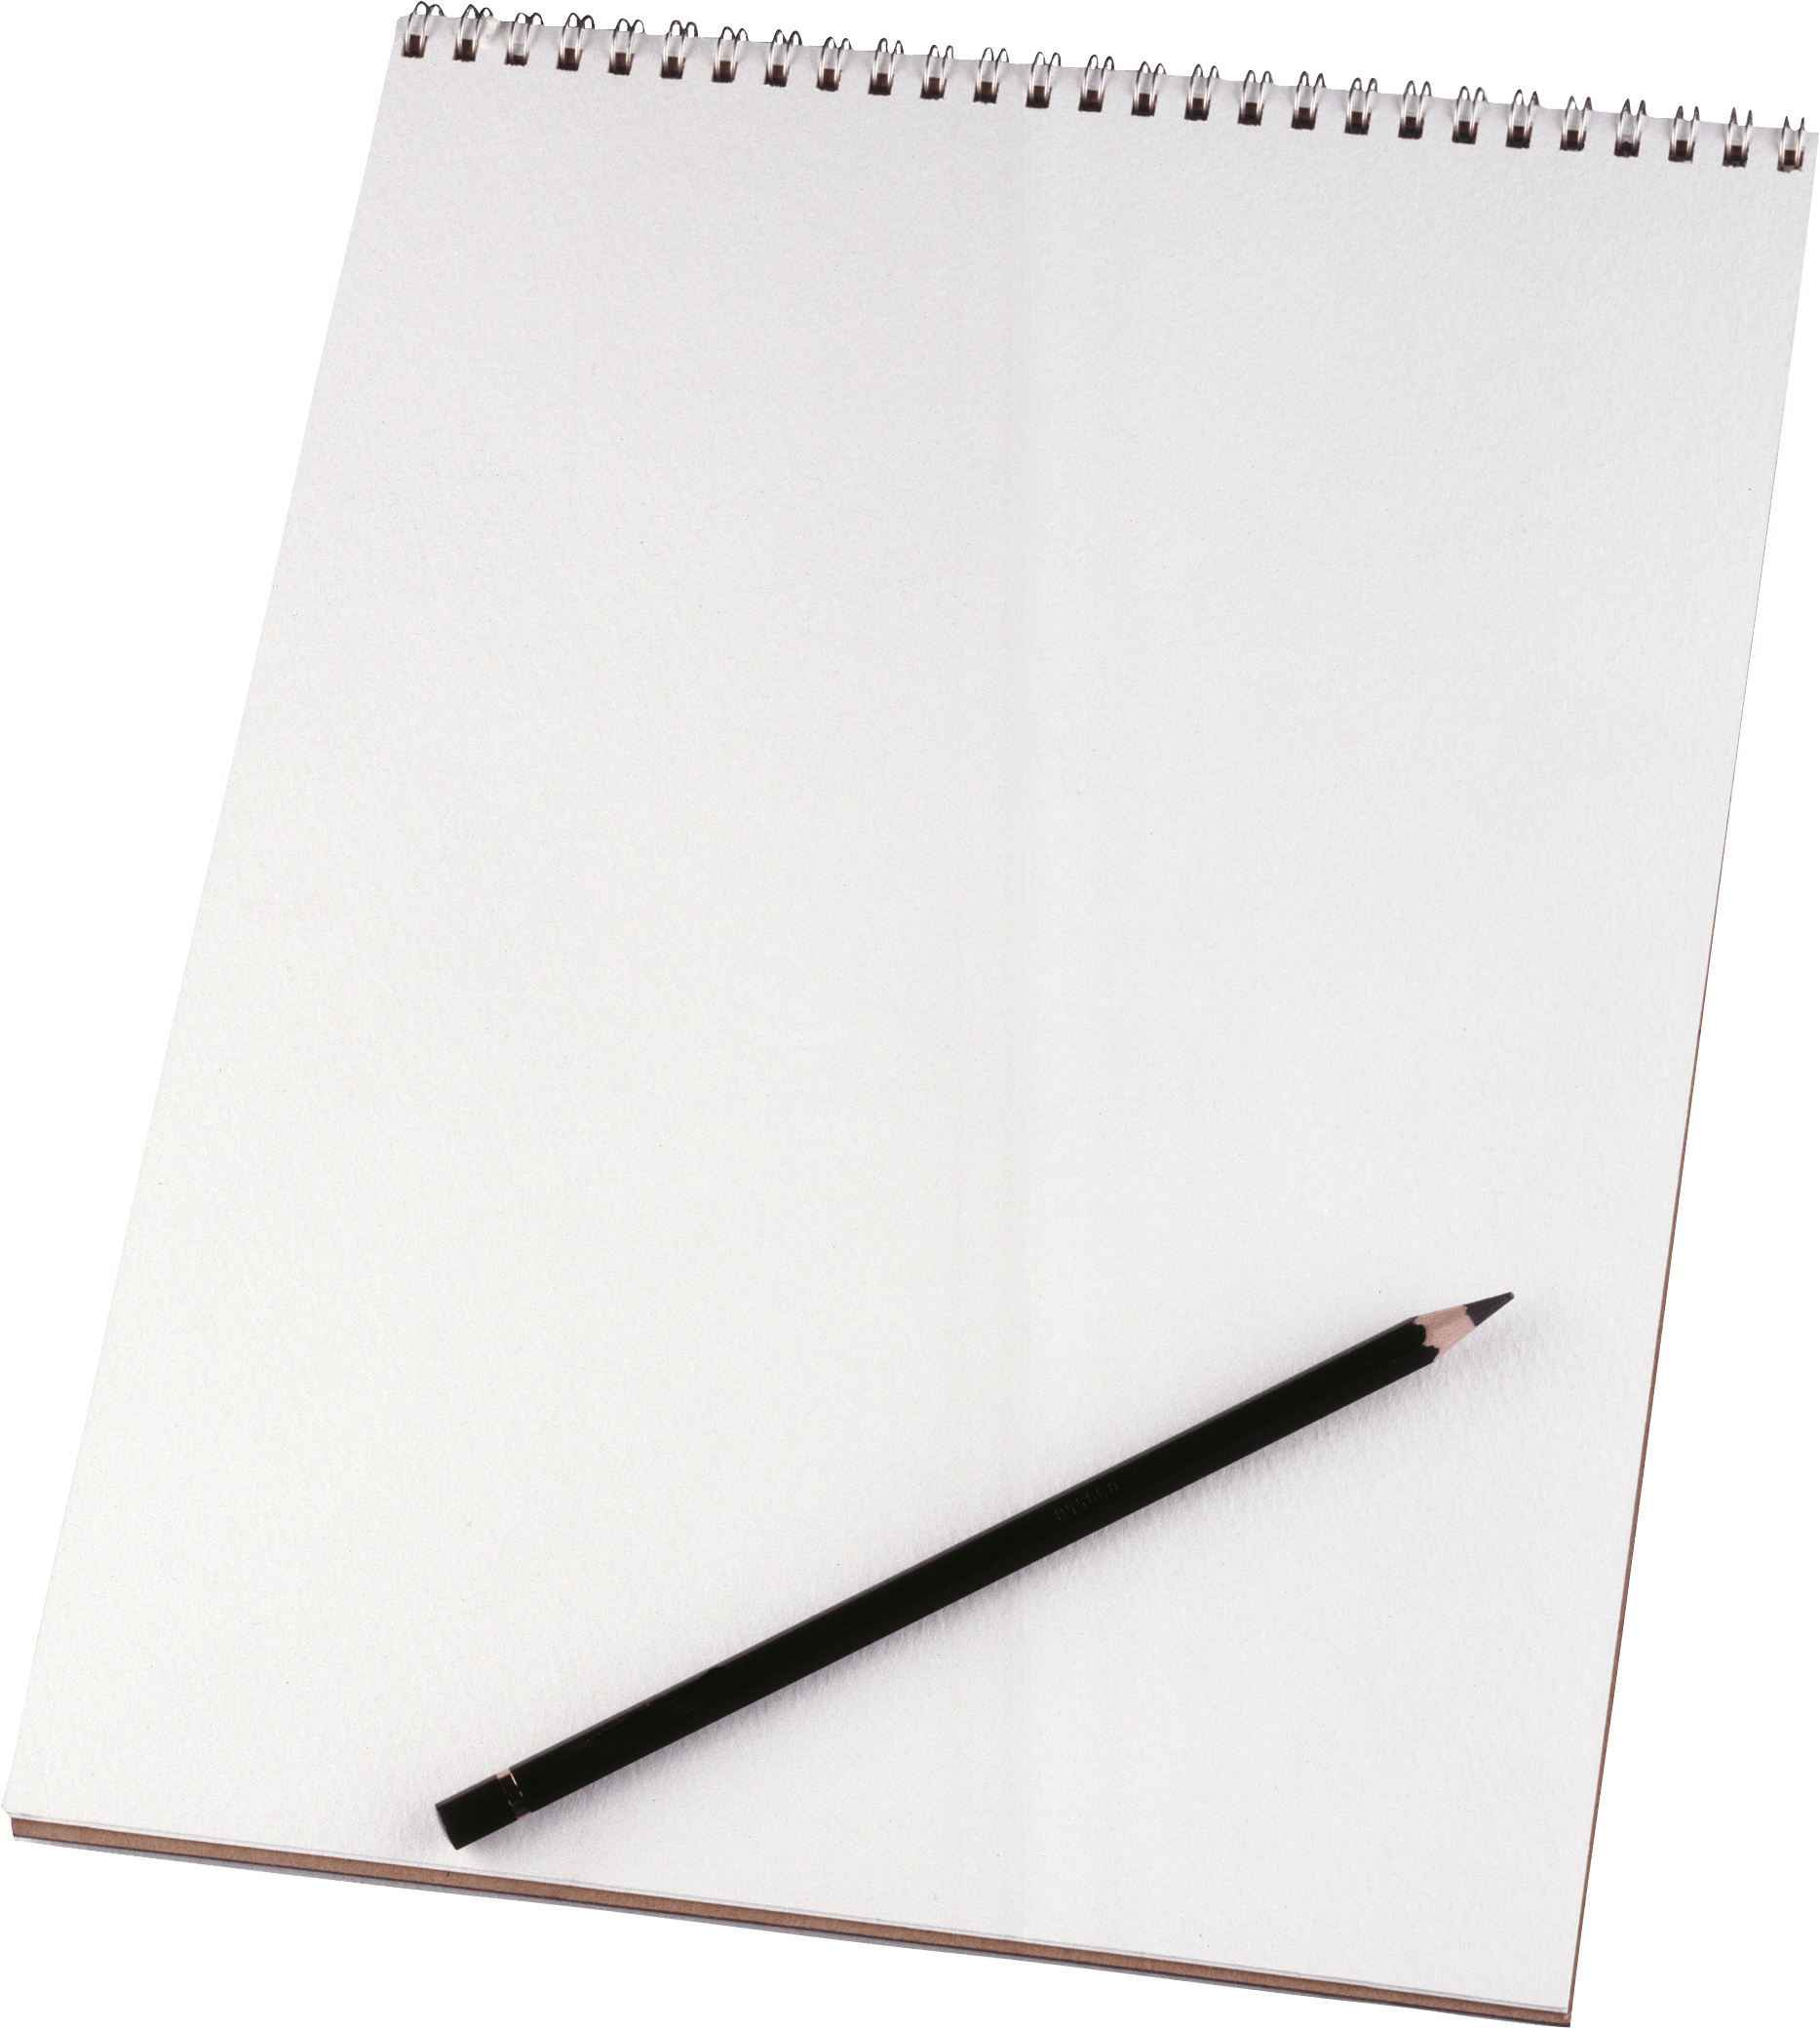 Notepad clipart png. Transparent stickpng paper sheet